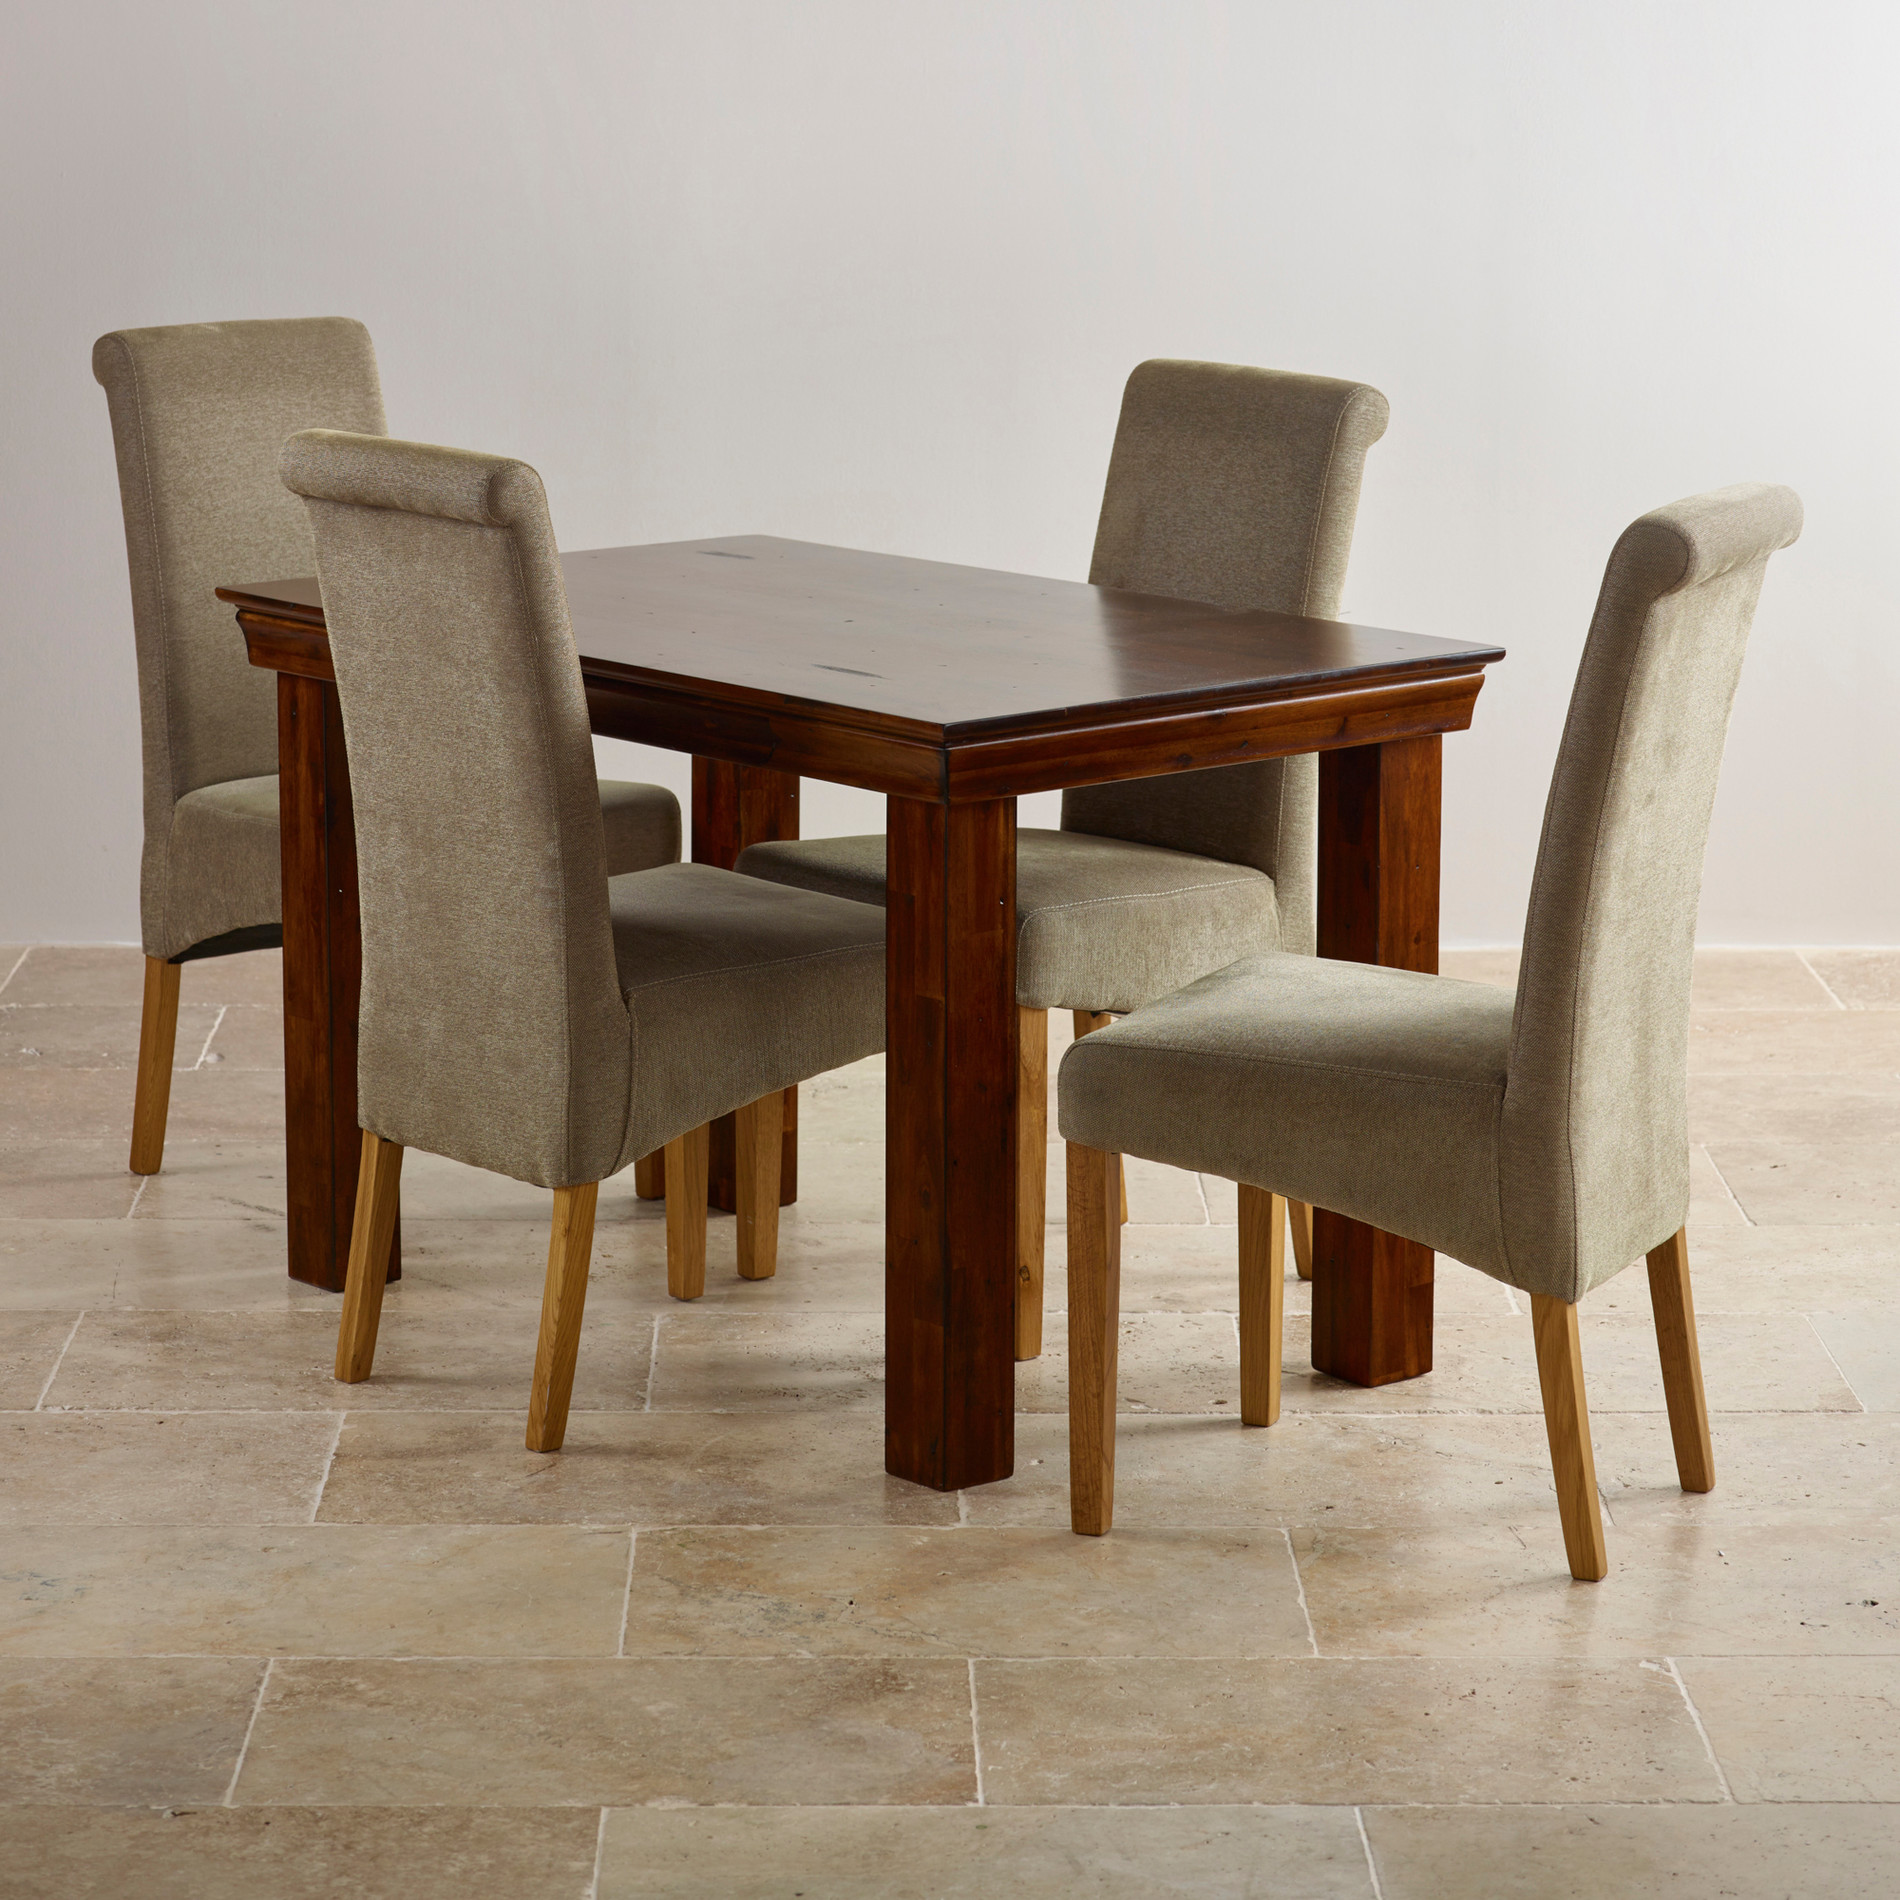 Hardwood Dining Set: Victoria Extending Dining Set In Acacia: Table + 4 Chairs